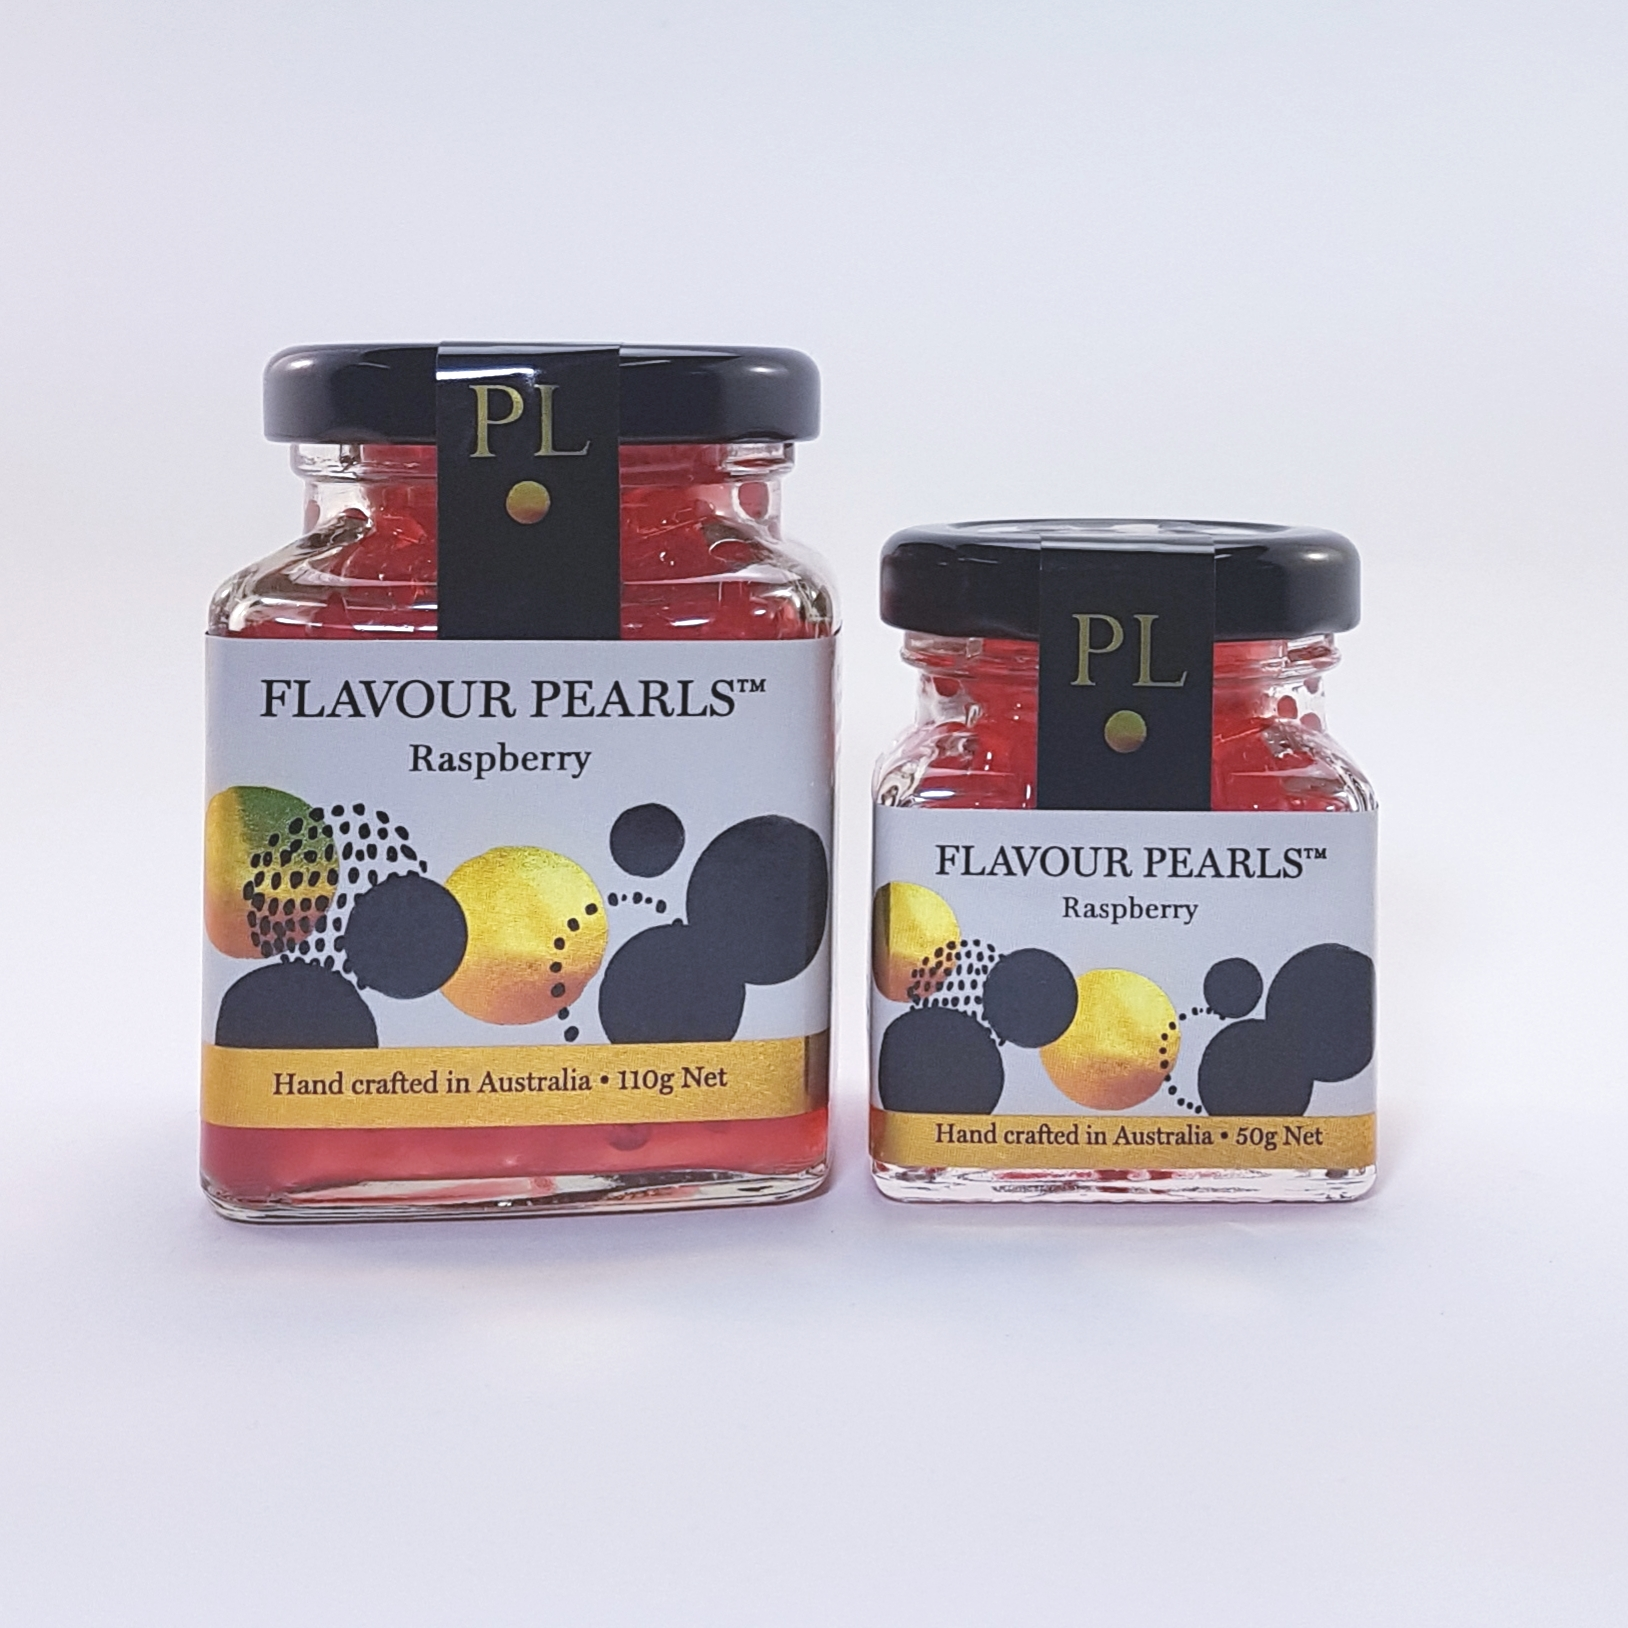 Raspberry Flavour Pearls 110g and 50g Jars